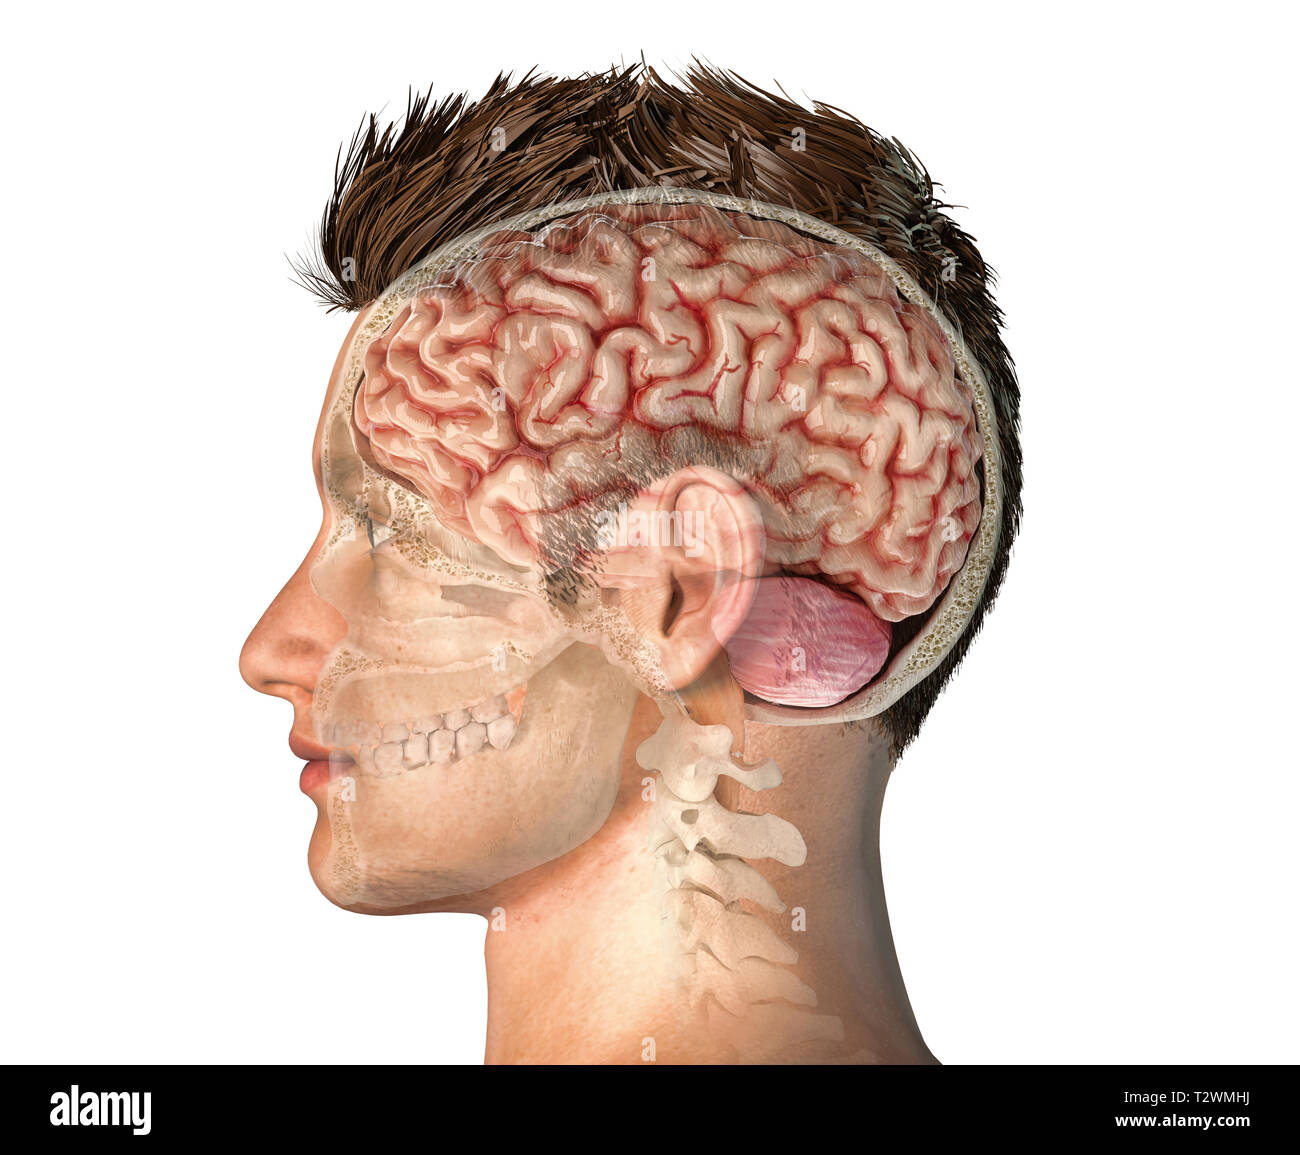 Man head with skull cross section with whole brain. Side view on white background. - Stock Image